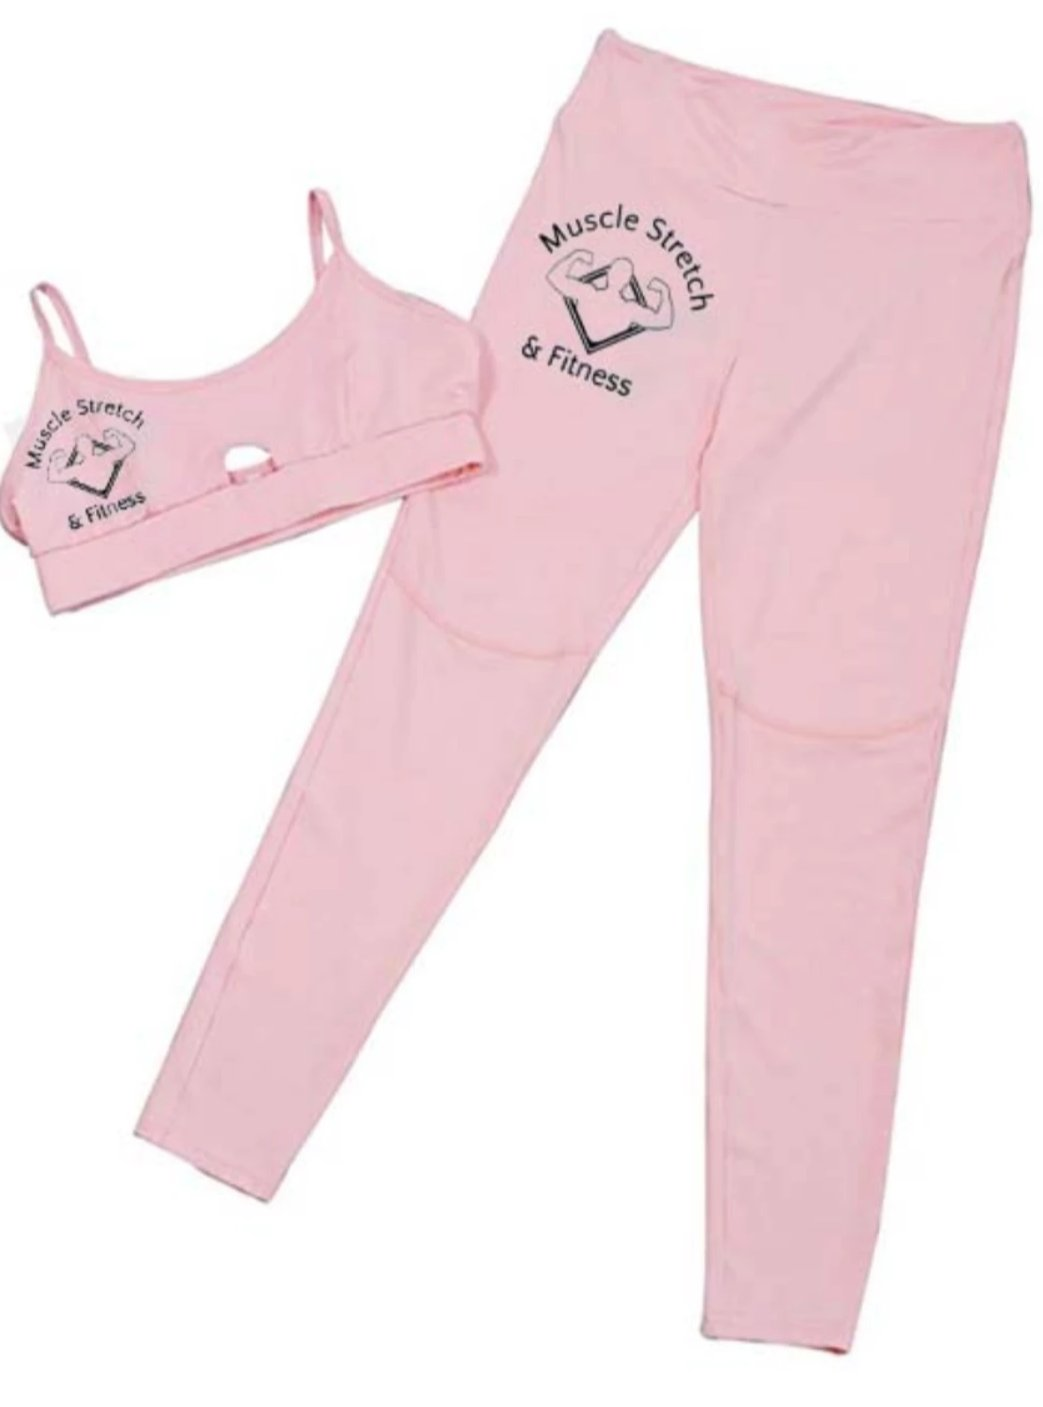 Women's Pink 2 PCS Sports Bra/Pants Set